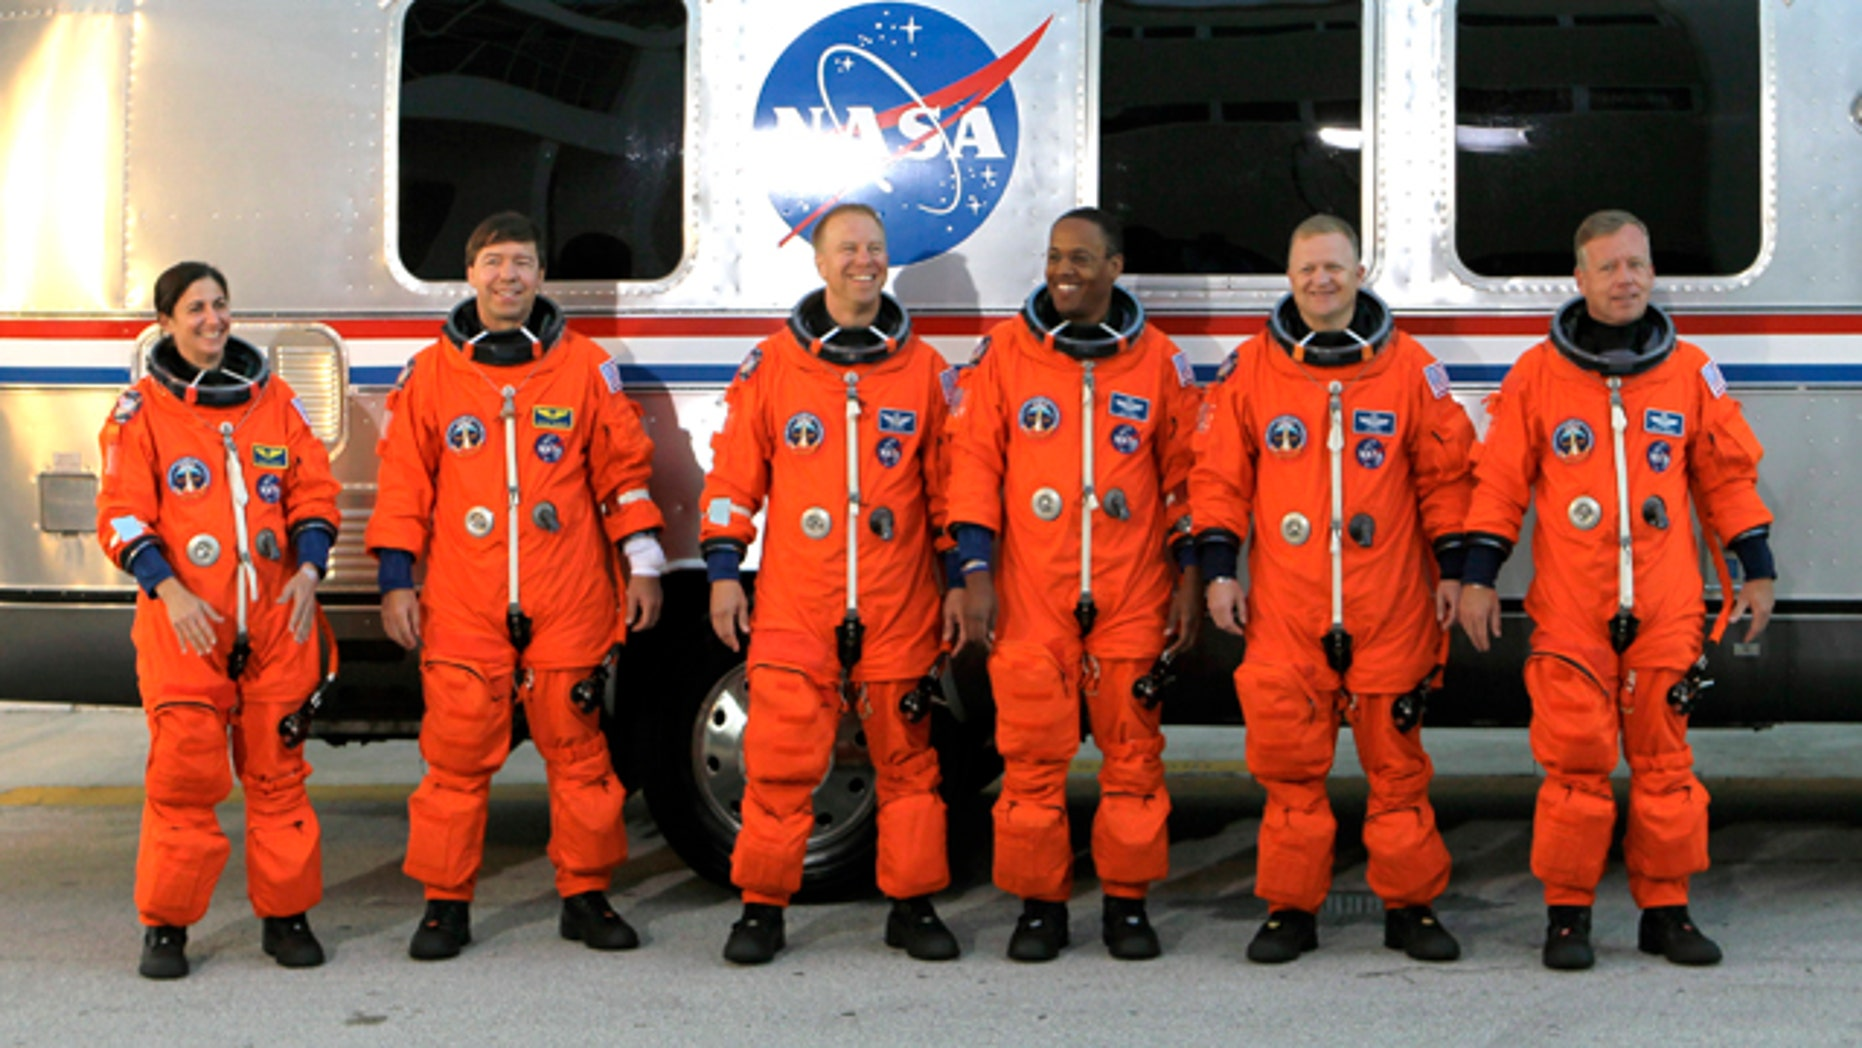 The crew of space shuttle Discovery, from left, mission specialists Nicole Stott, Michael Barratt, Tim Kopra and Alvin Drew, pilot Eric Boe and commander Steve Lindsey, leave the Operations and Checkout Building to board the shuttle at pad 39A for a launch dress rehearsal at the Kennedy Space Center in Cape Canaveral, Fla., Friday, Oct. 15, 2010. Discovery is scheduled to launch Nov. 1.